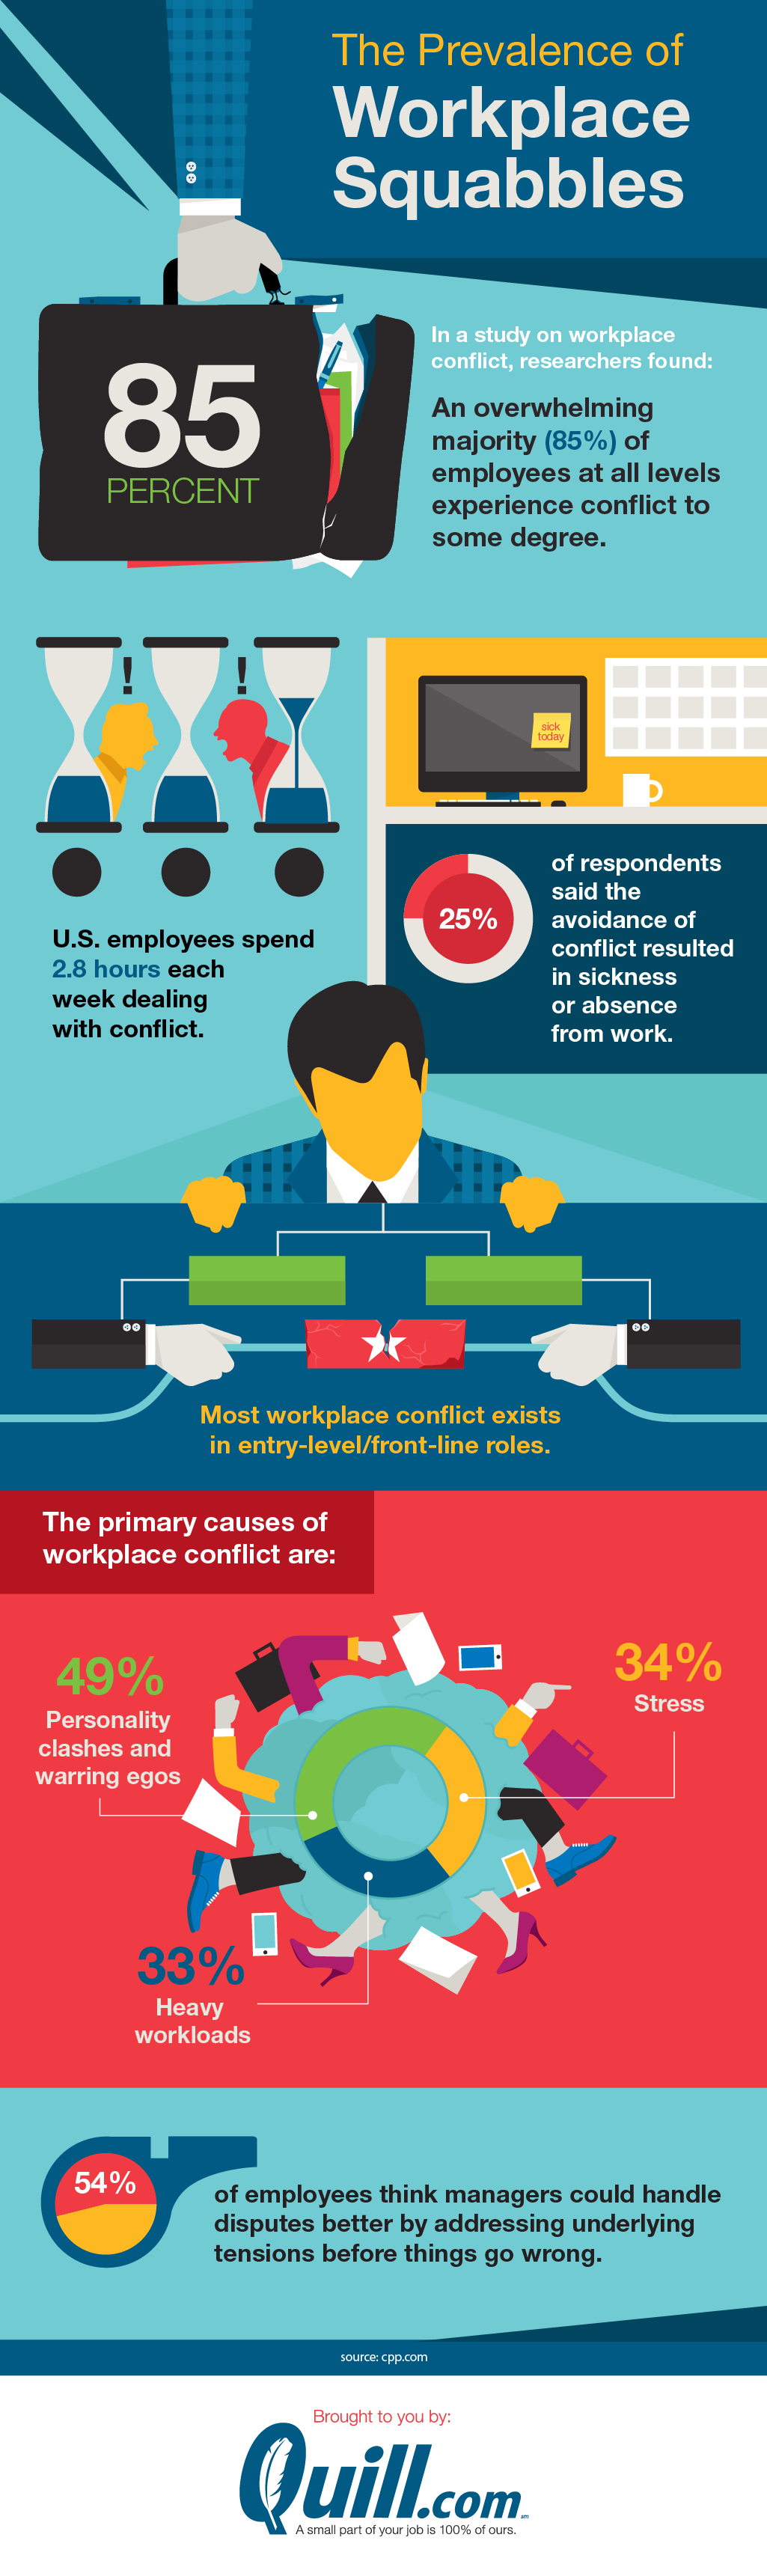 Workplace Conflict: How to Douse the Fire Before the it Burns - Infographic